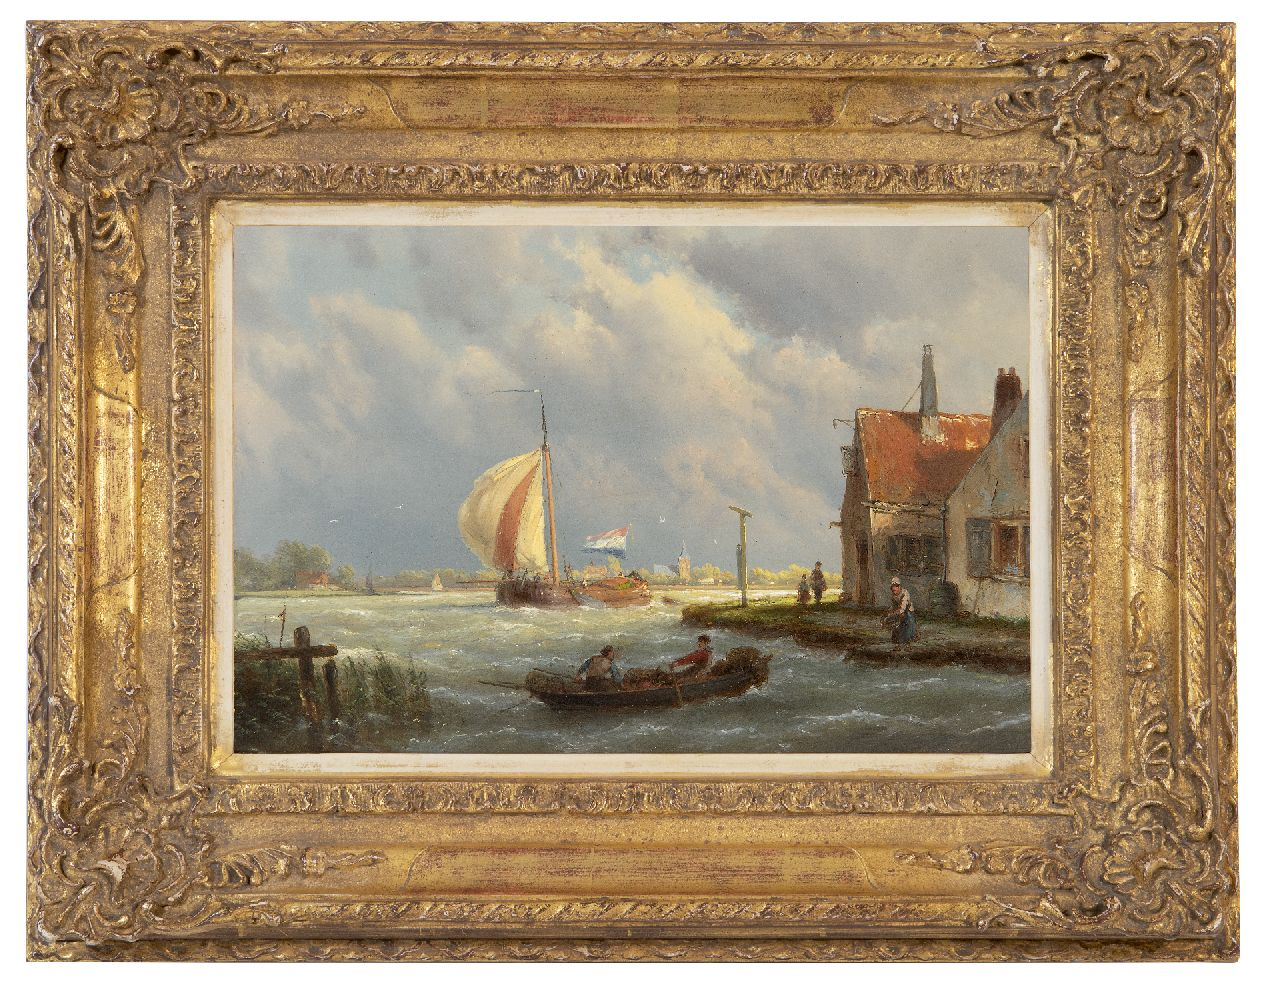 Koekkoek H.  | Hermanus Koekkoek | Paintings offered for sale | Sailing tjalk in sturdy weather, oil on panel 22.1 x 32.0 cm, signed c.r. on the house